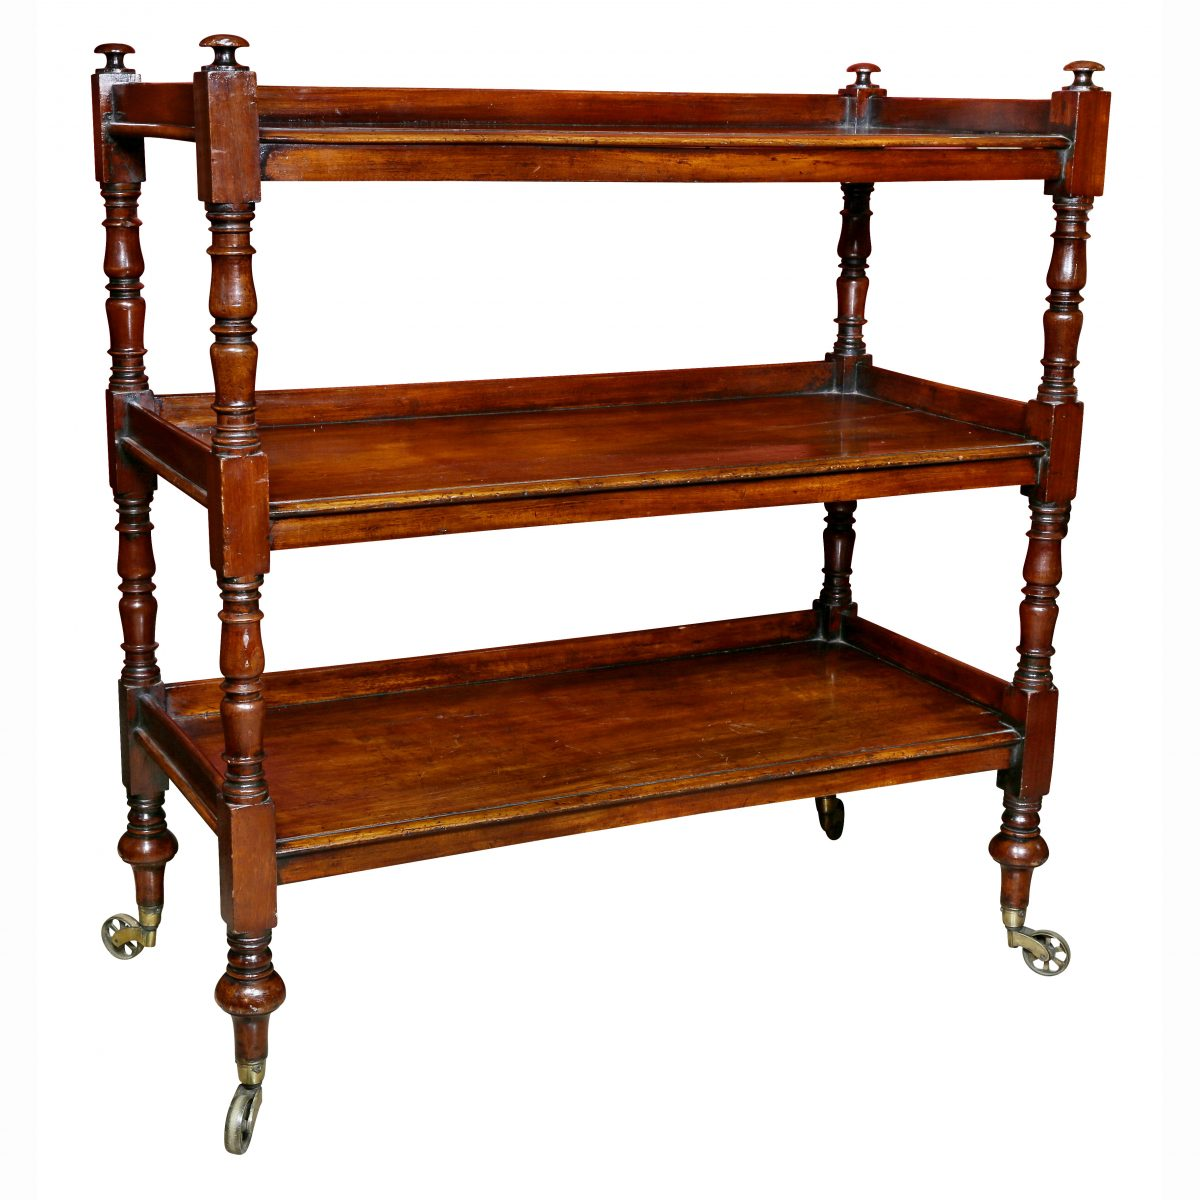 Regency Mahogany Book Trolly